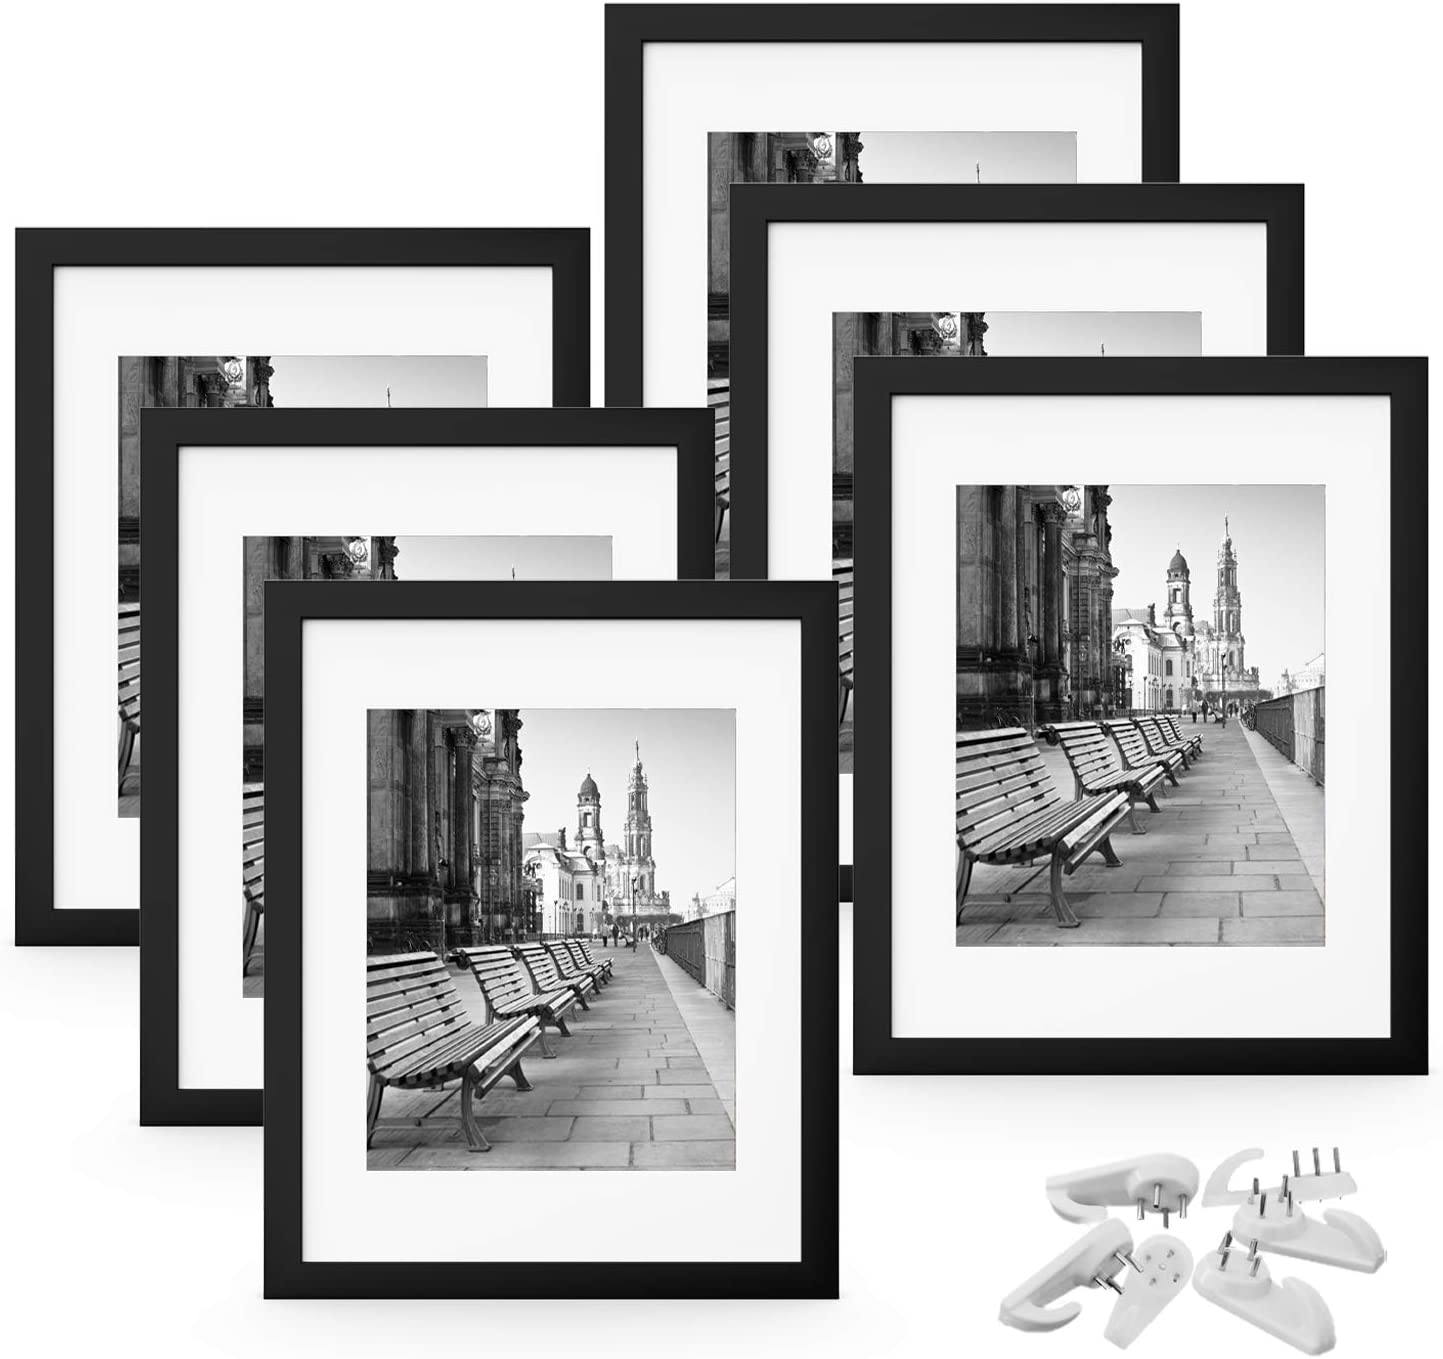 FEGO 8x10 Picture Frame Set of 6, Wall Gallary Photo Frame, Display Pictures 5x7 with Mat or 8x10 Without Mat, Hanging Hardware Included, Black